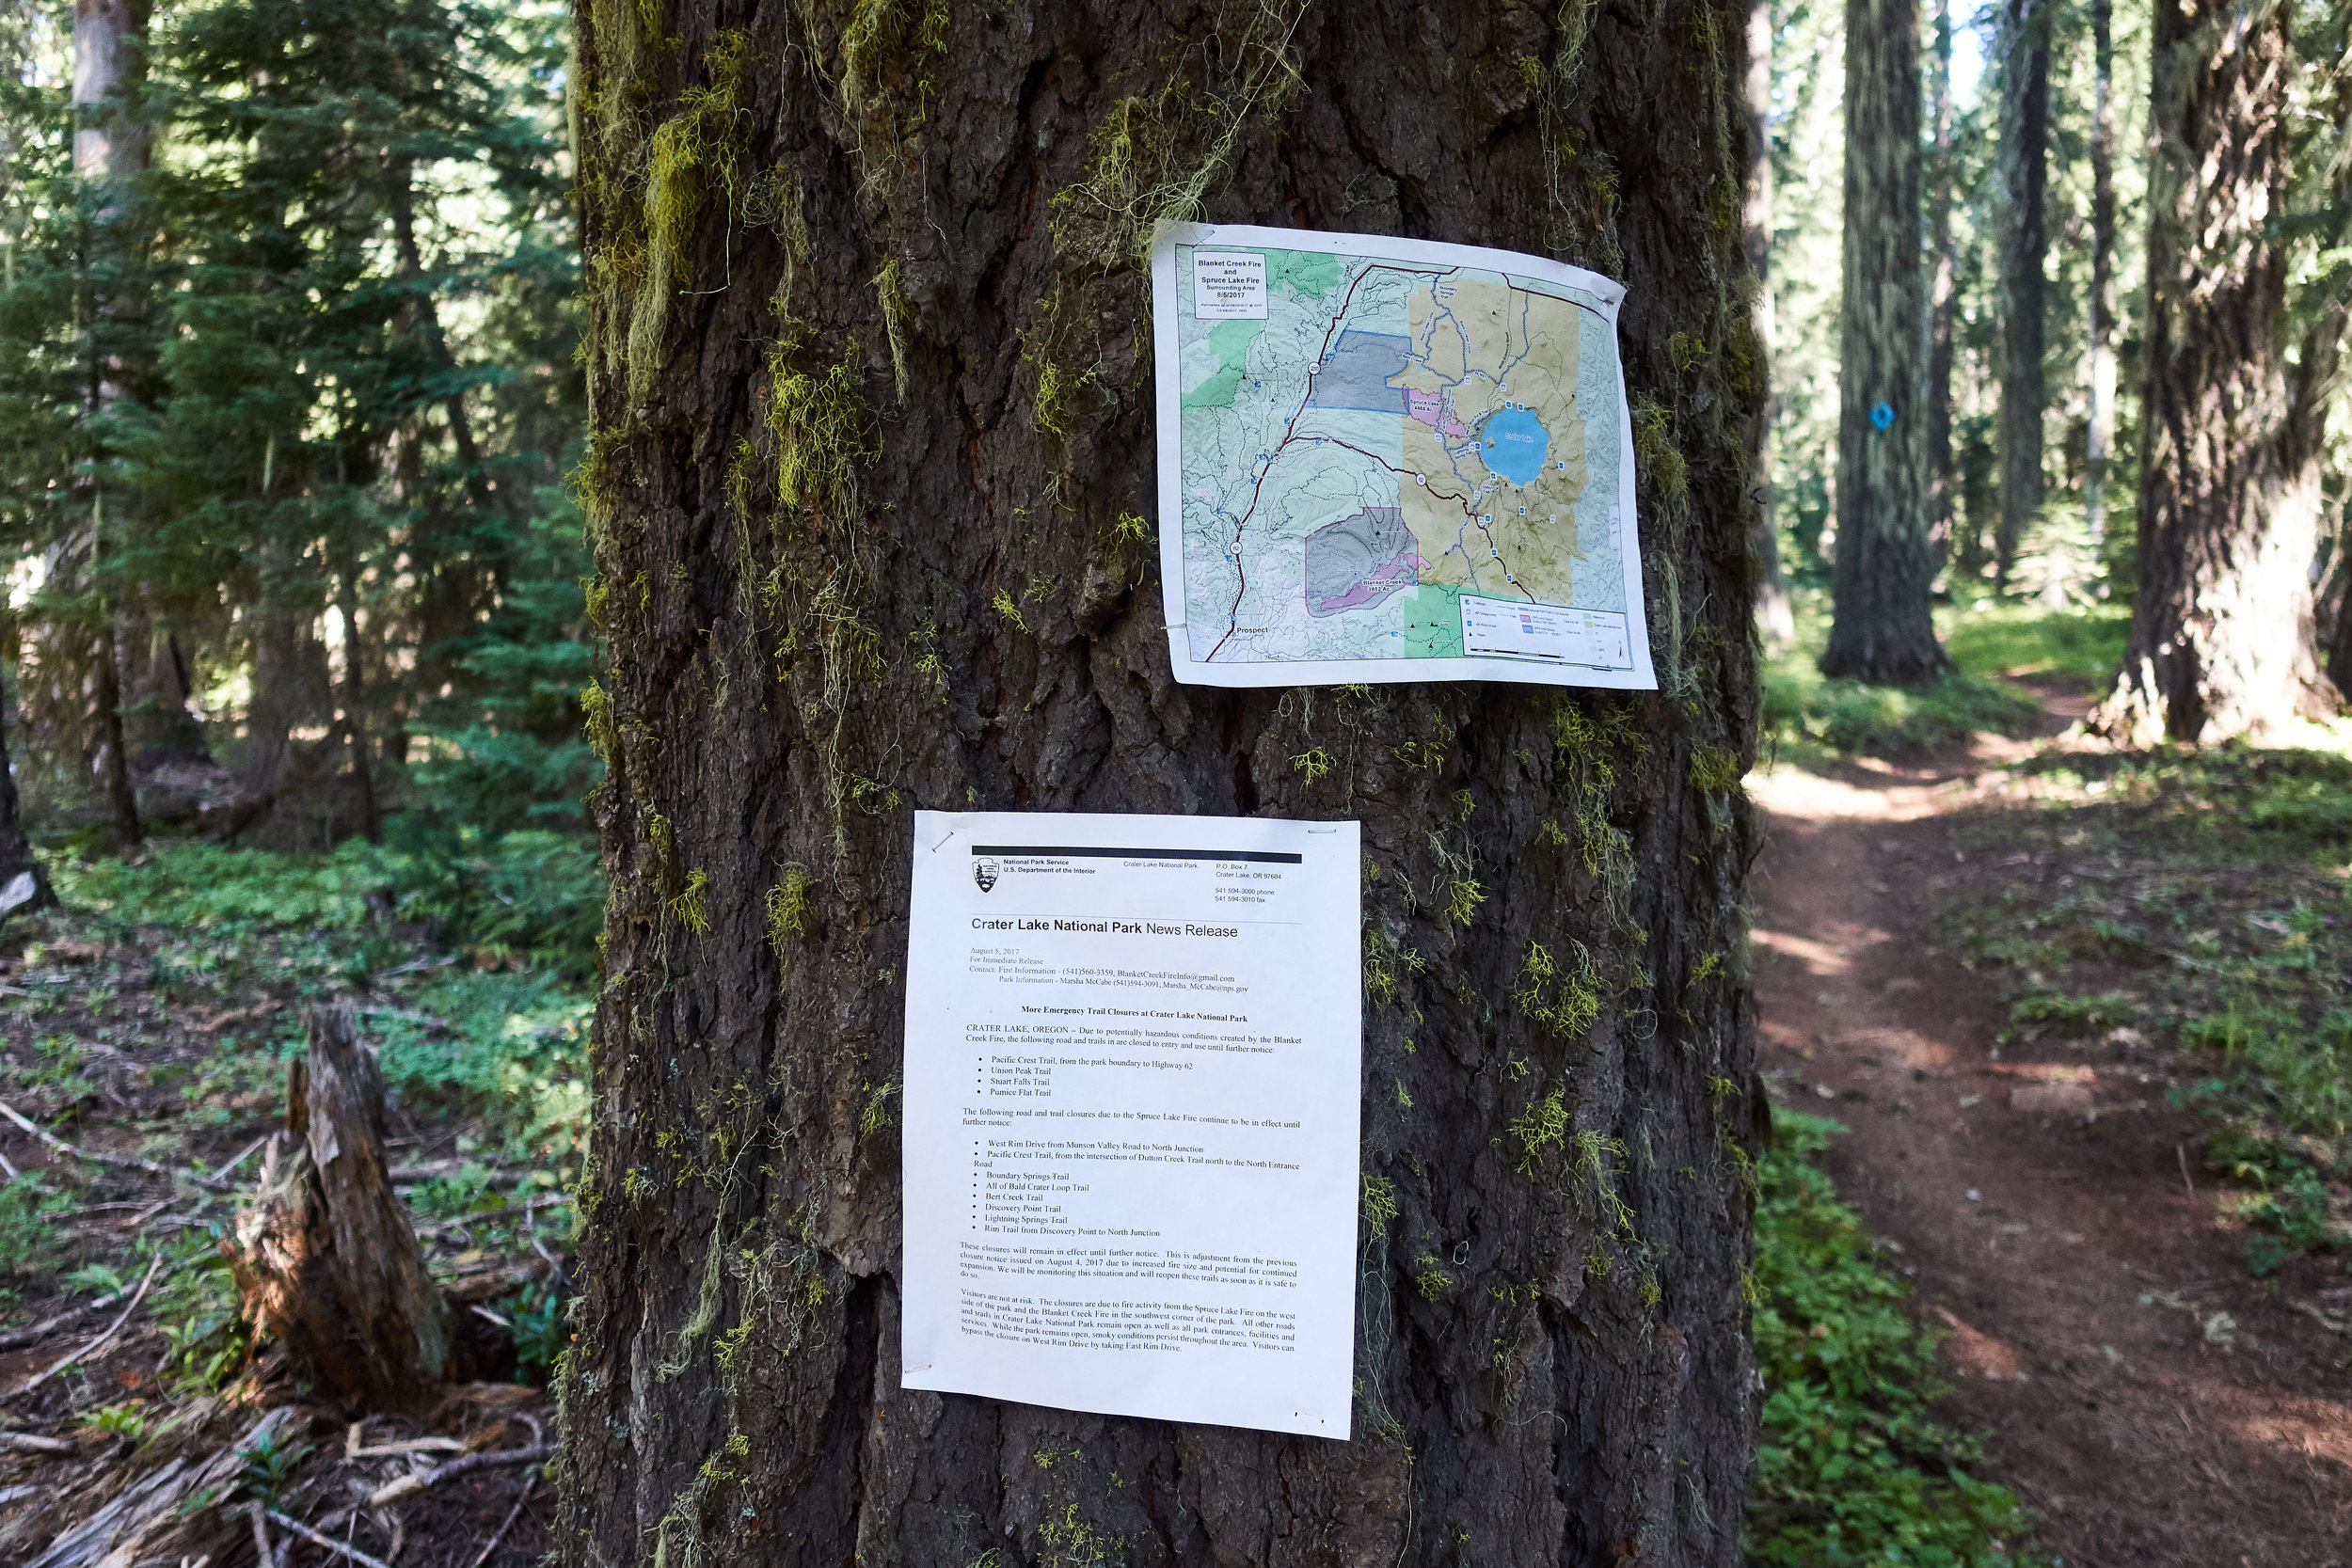 Info about the trail closures ahead.